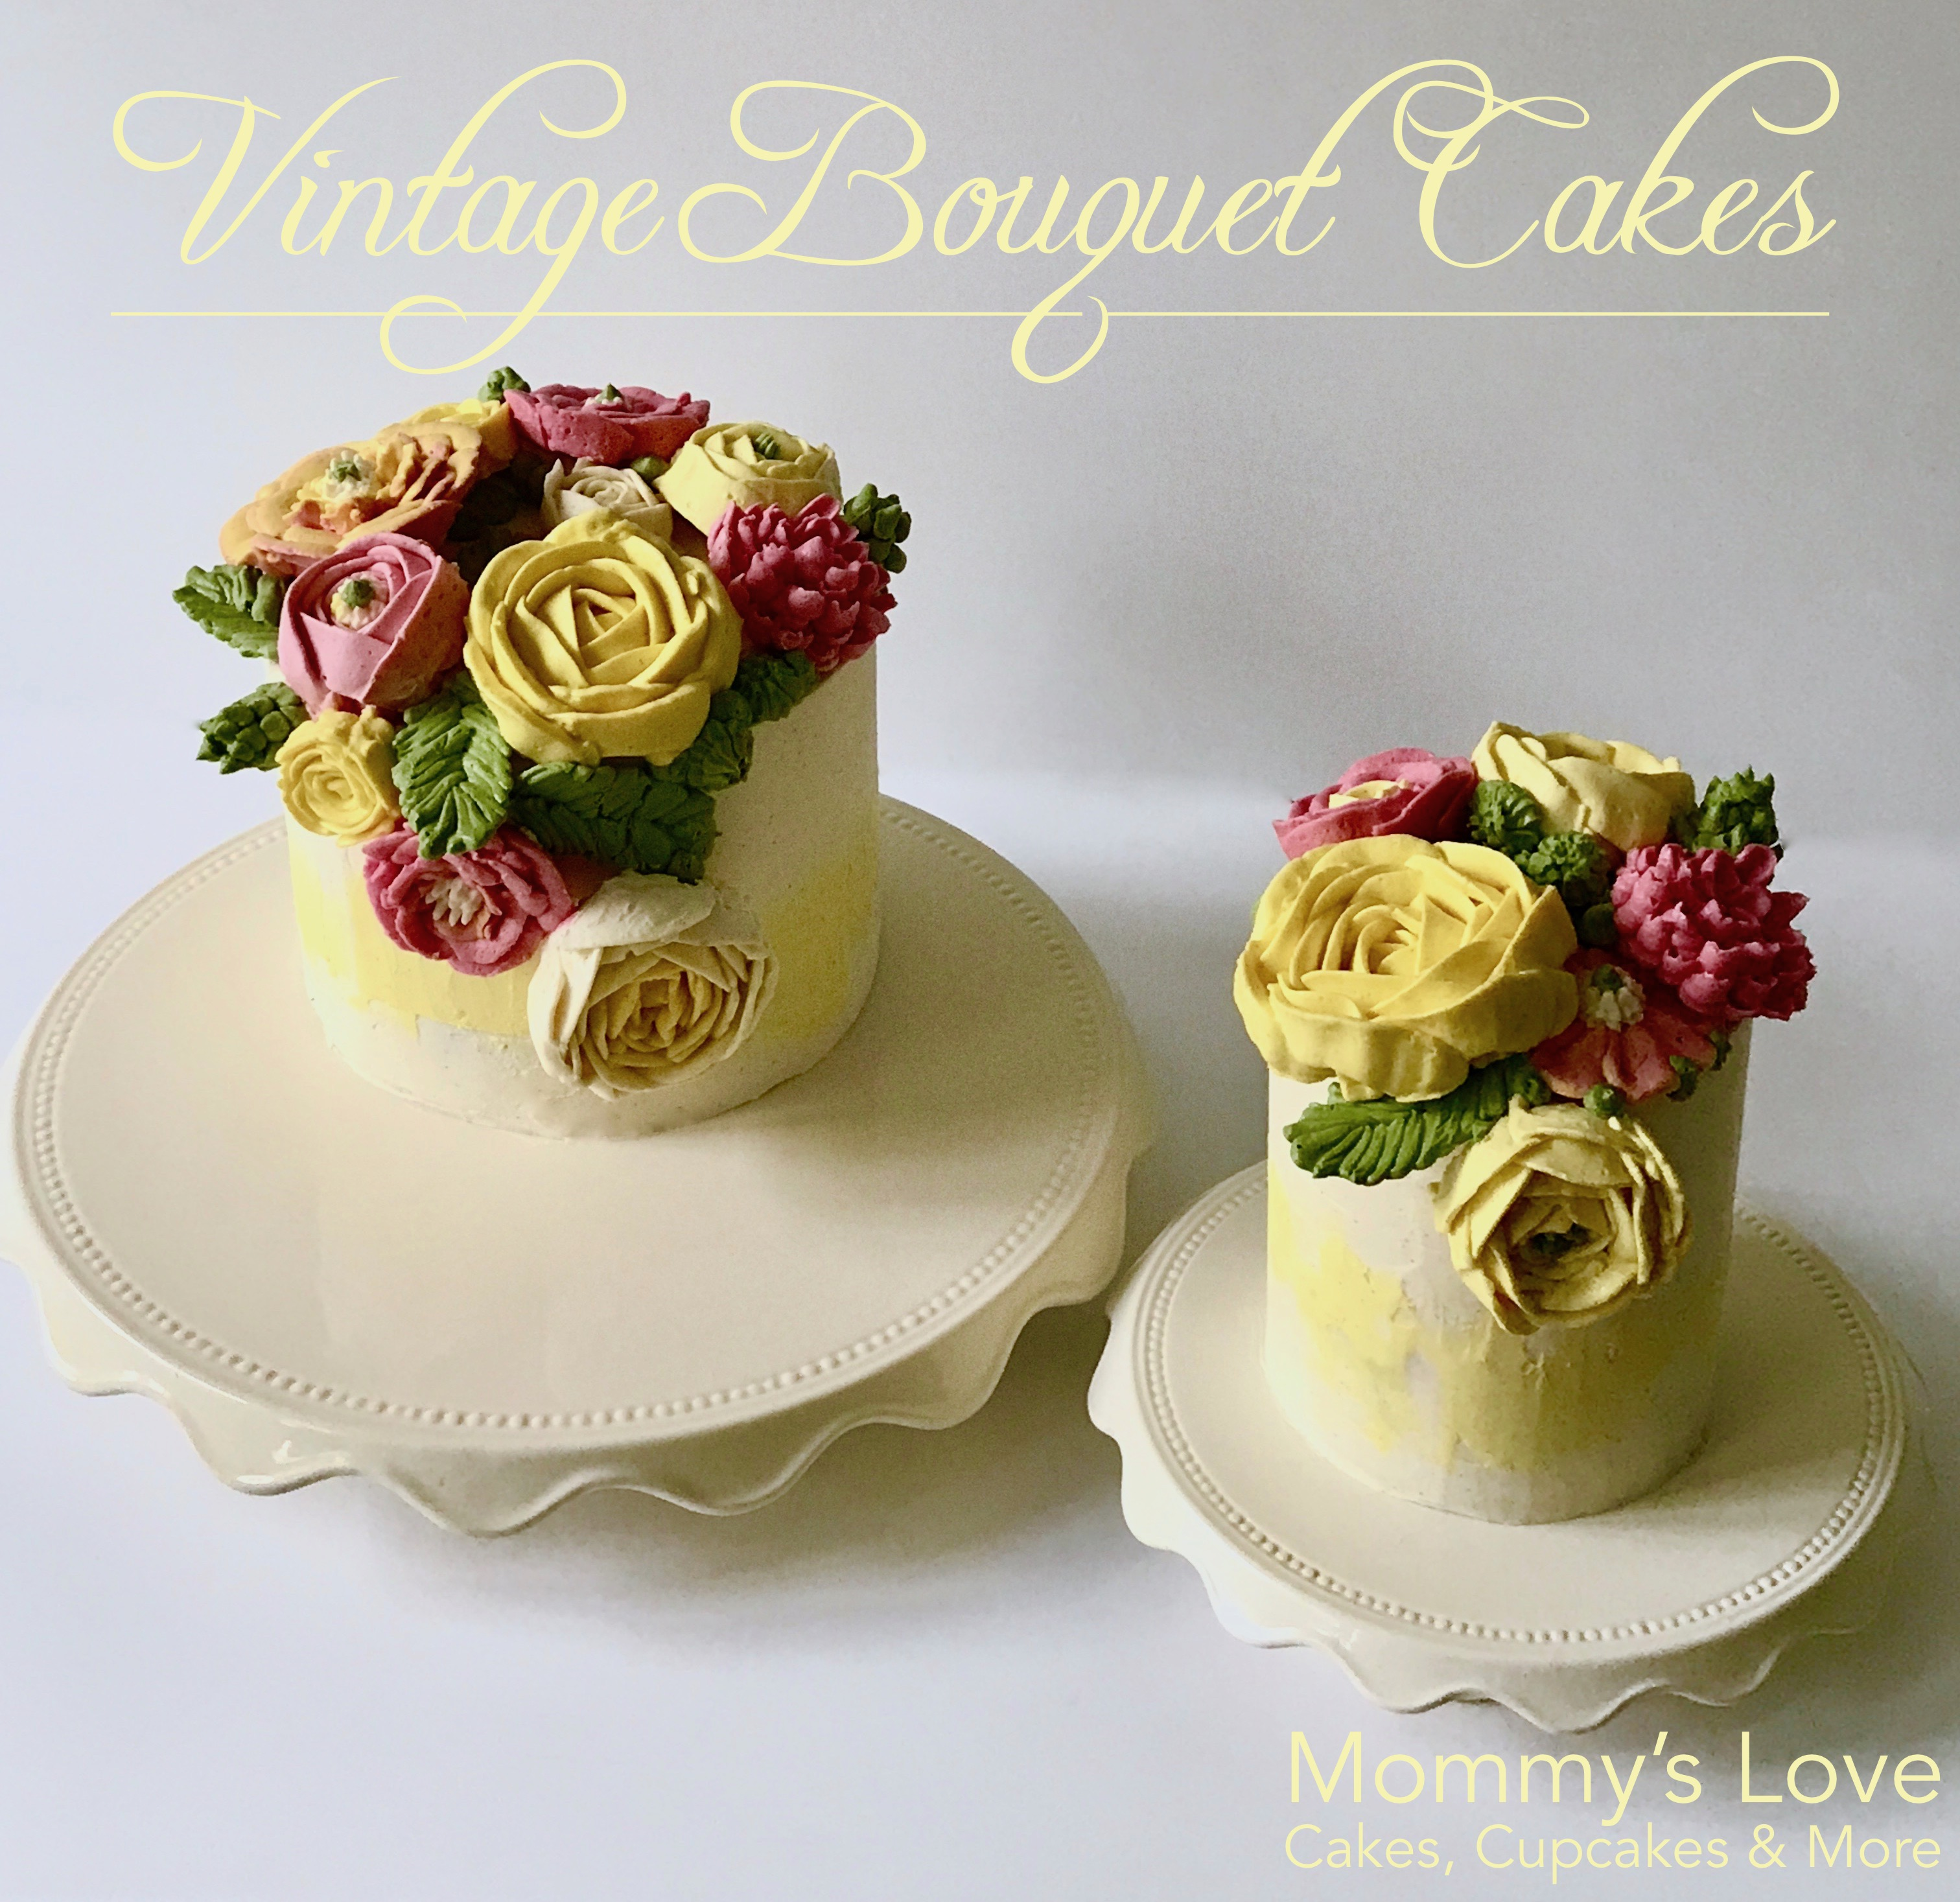 Vintage Bouquet Cakes by Mommy's Love